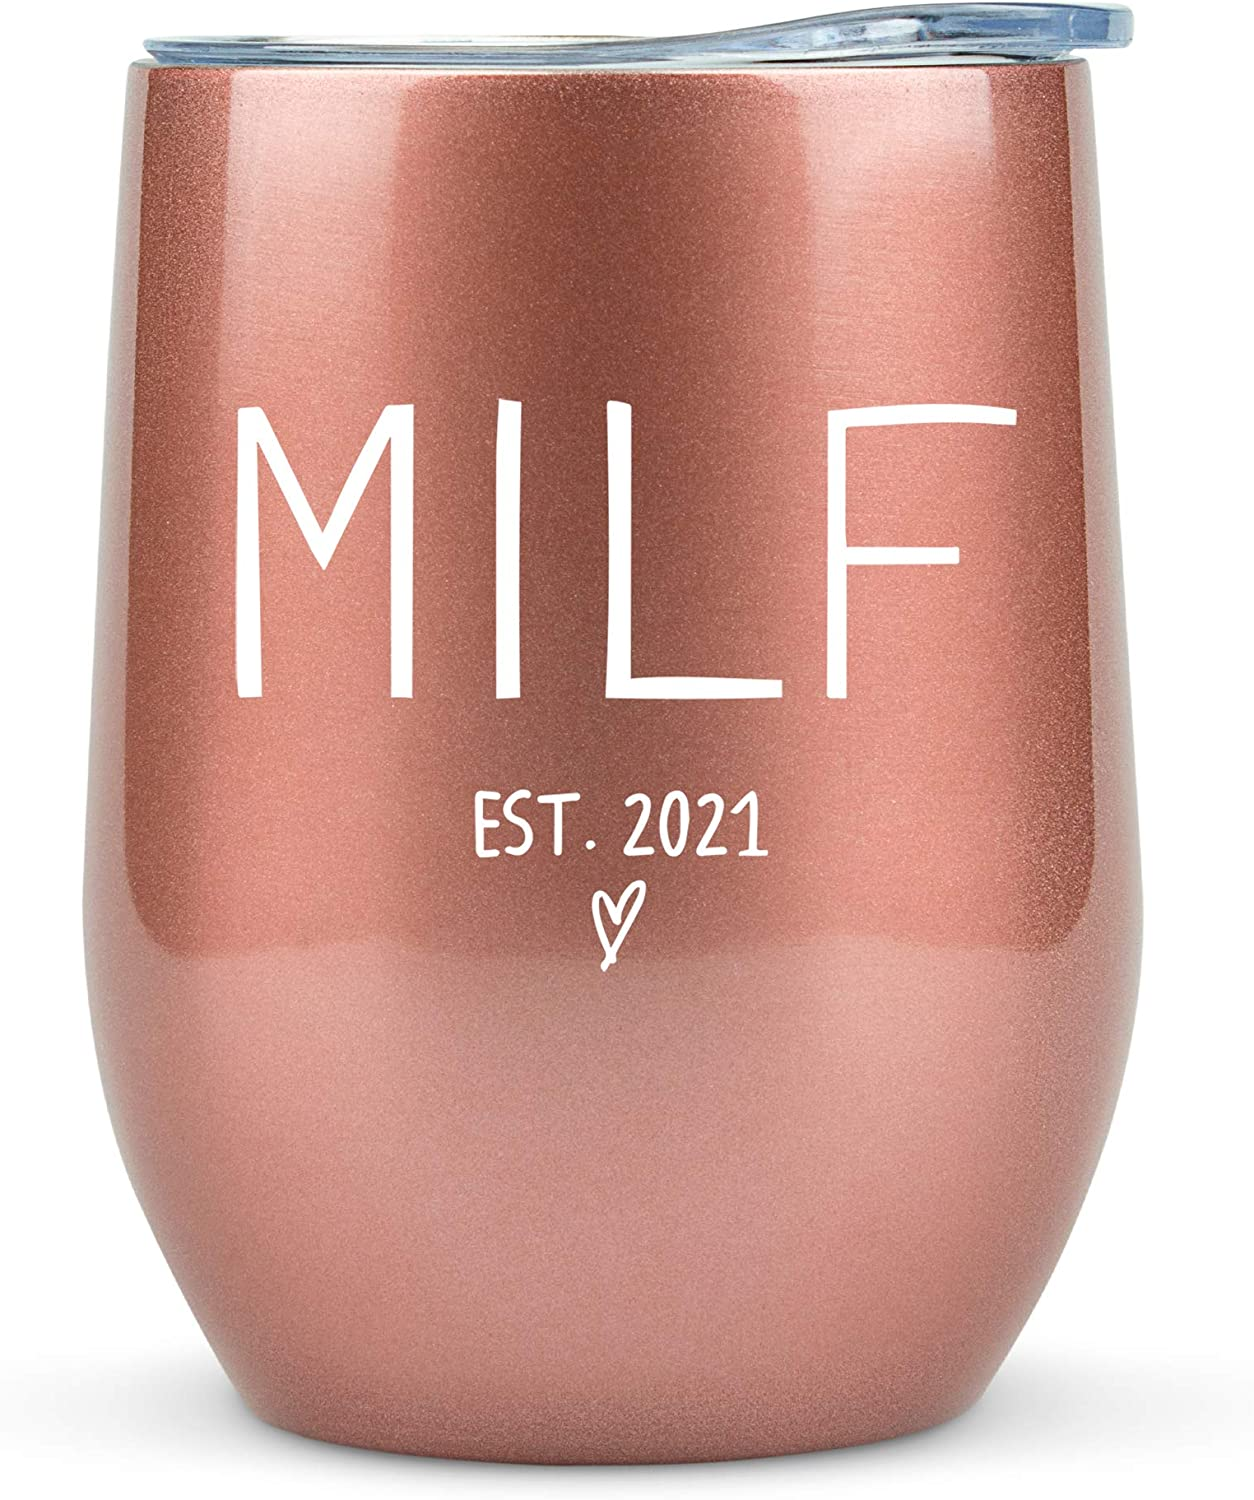 New Mom Gifts 2021 MILF - 12oz Wine/Coffee Tumbler/Mug - Funny Gift Idea for First Time Mom, Women, Basket, Mommy, Pregnancy, Push, Baby Shower Gifts, Glass, Mom to Be